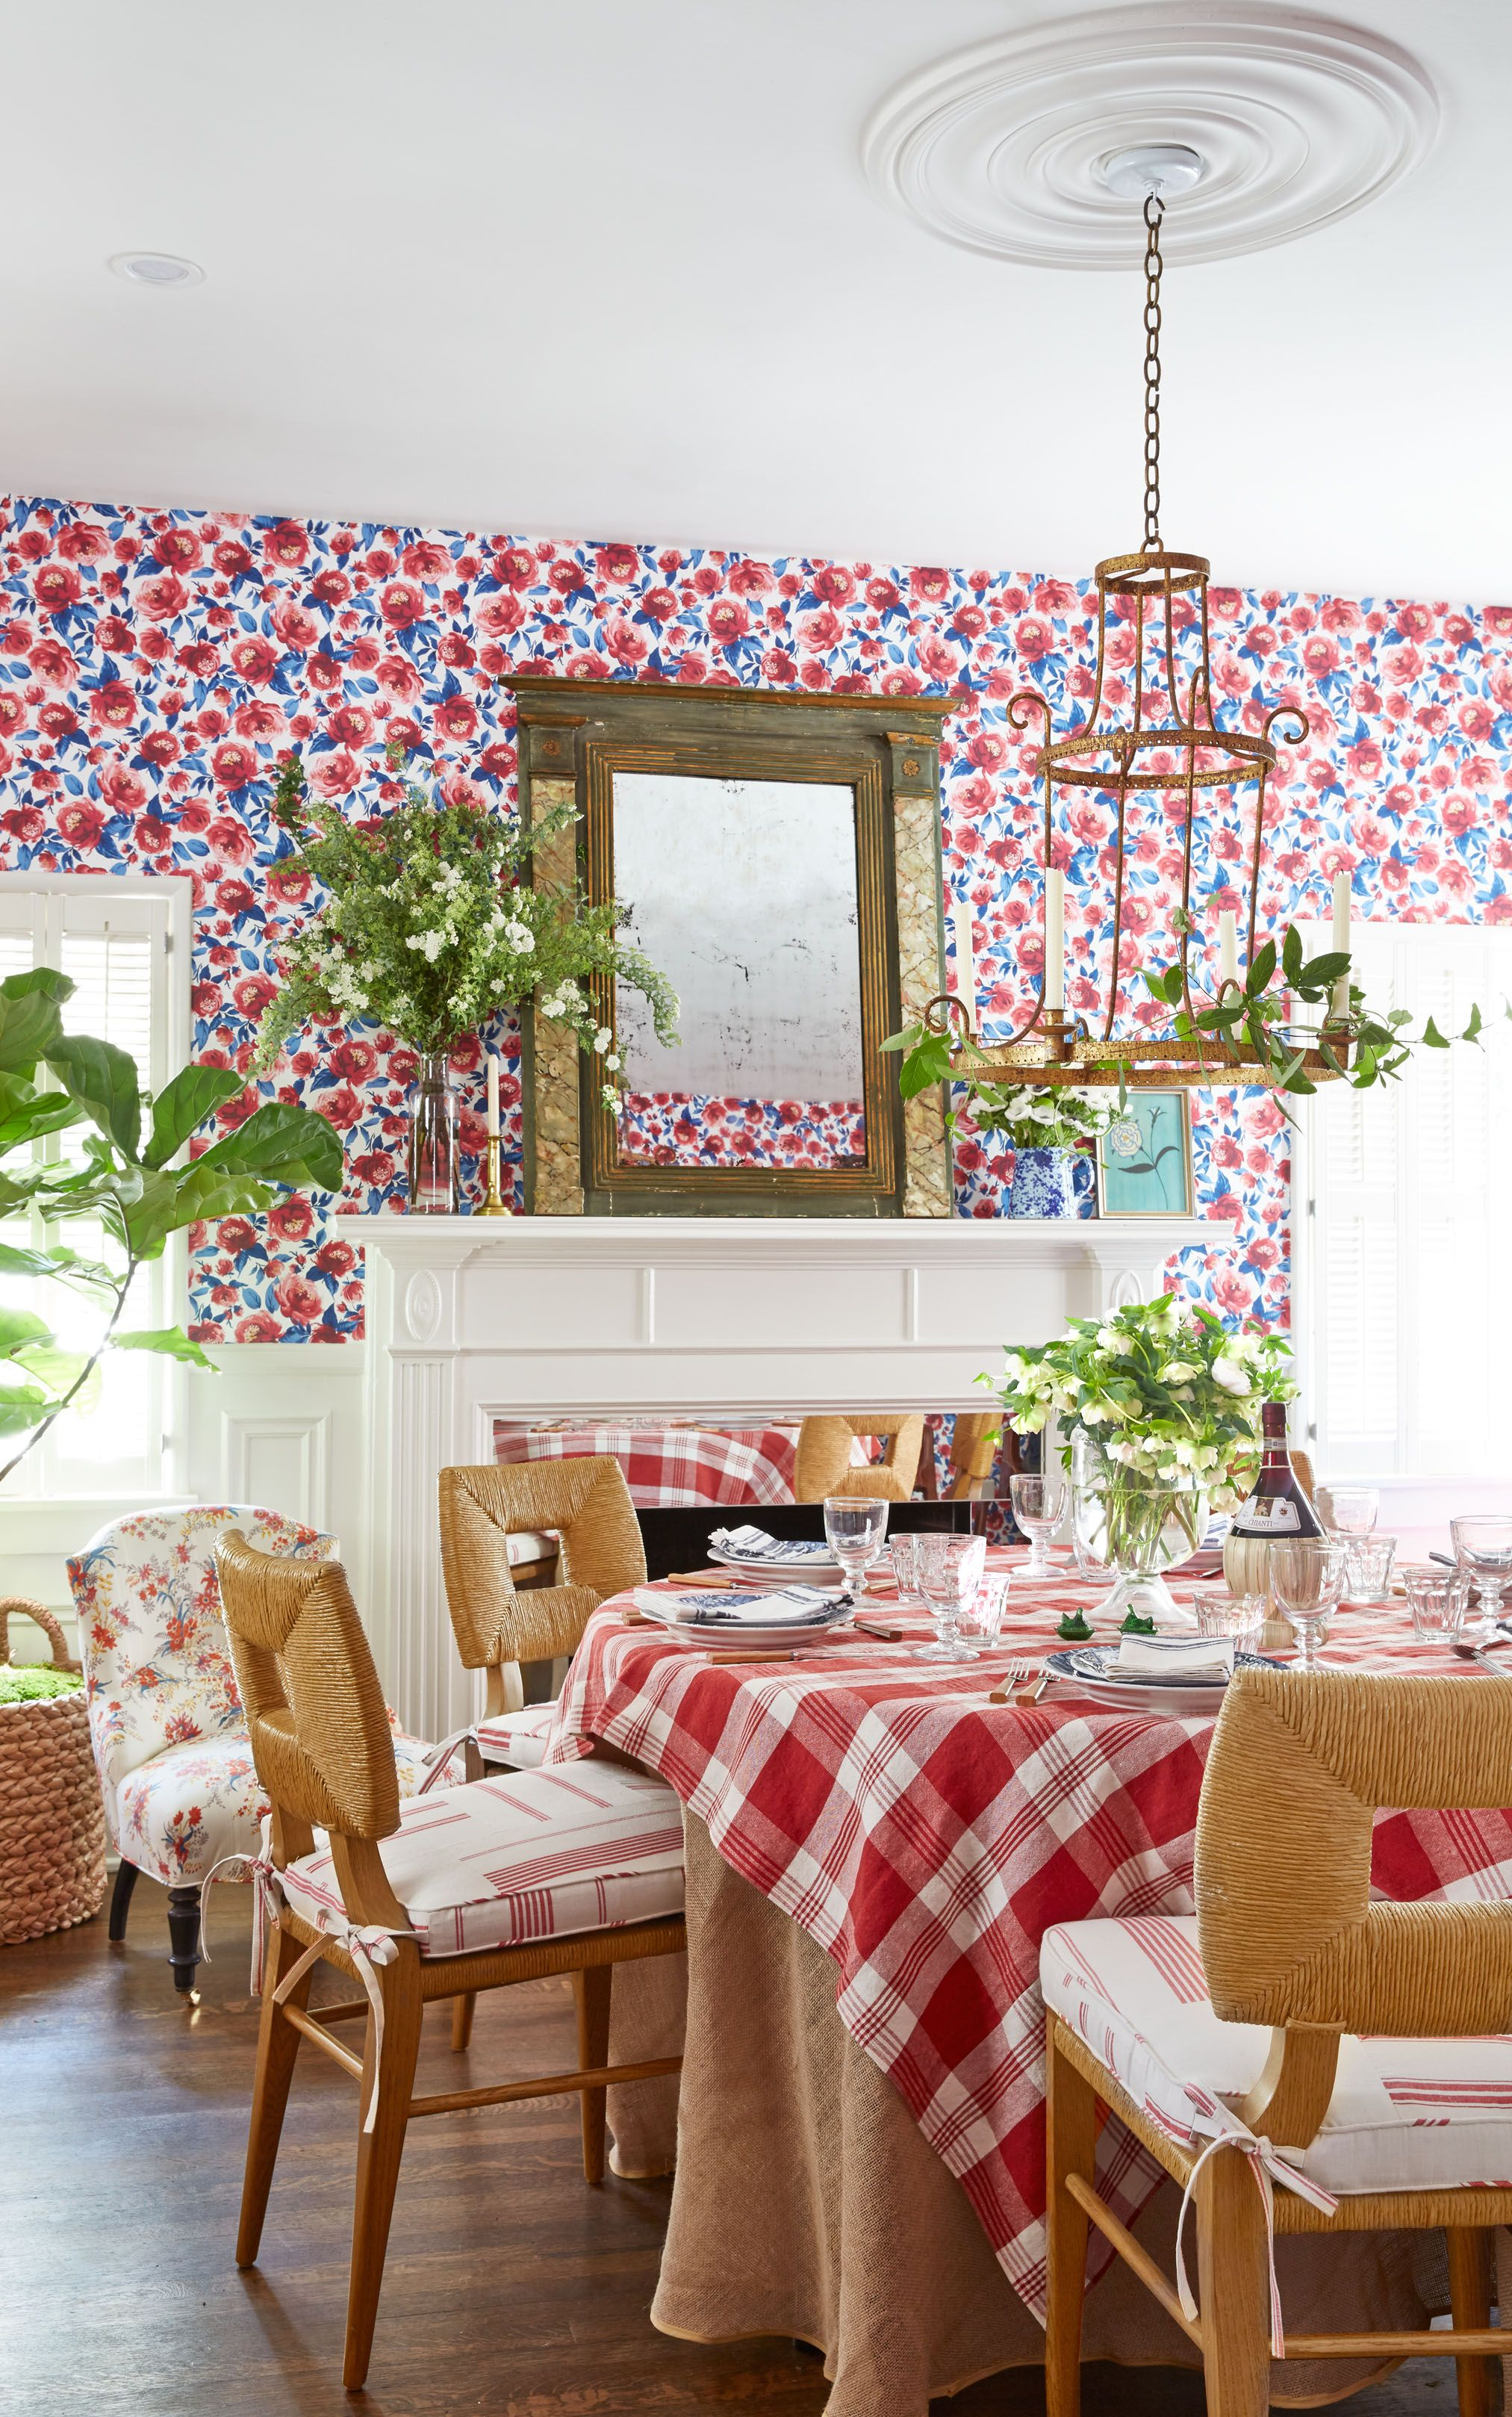 15 Charming Wainscoting Ideas, Dining Room Wallpaper Wainscoting